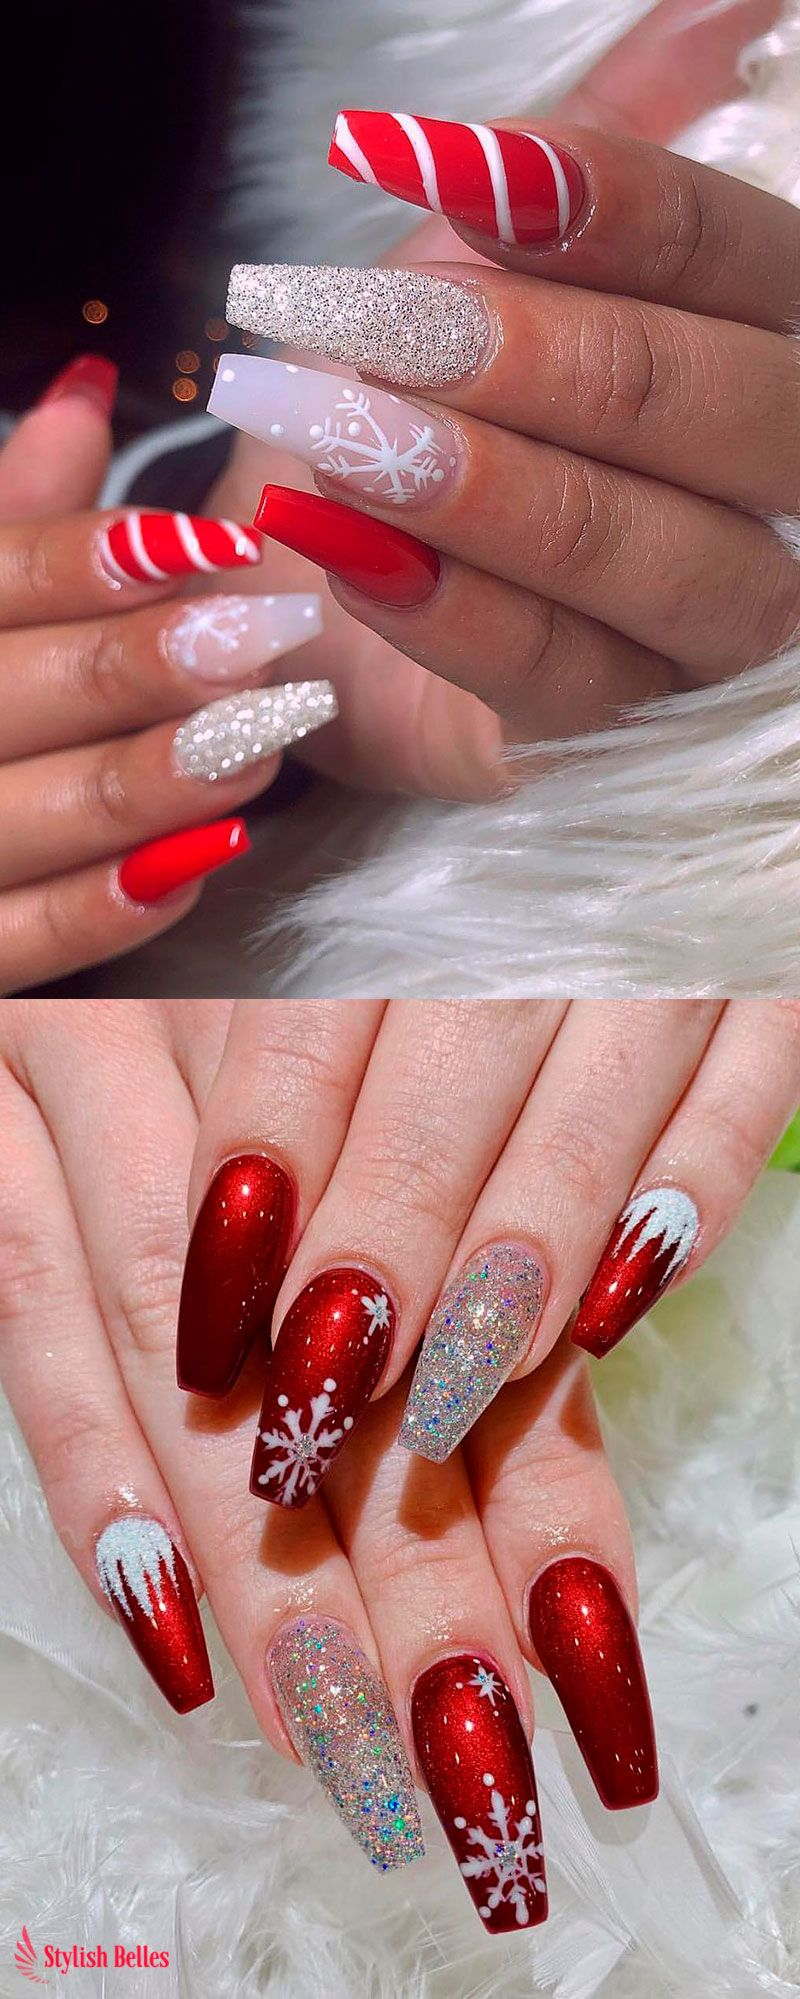 Amazing Snowflake Glitter And Red Christmas Nails Ideas